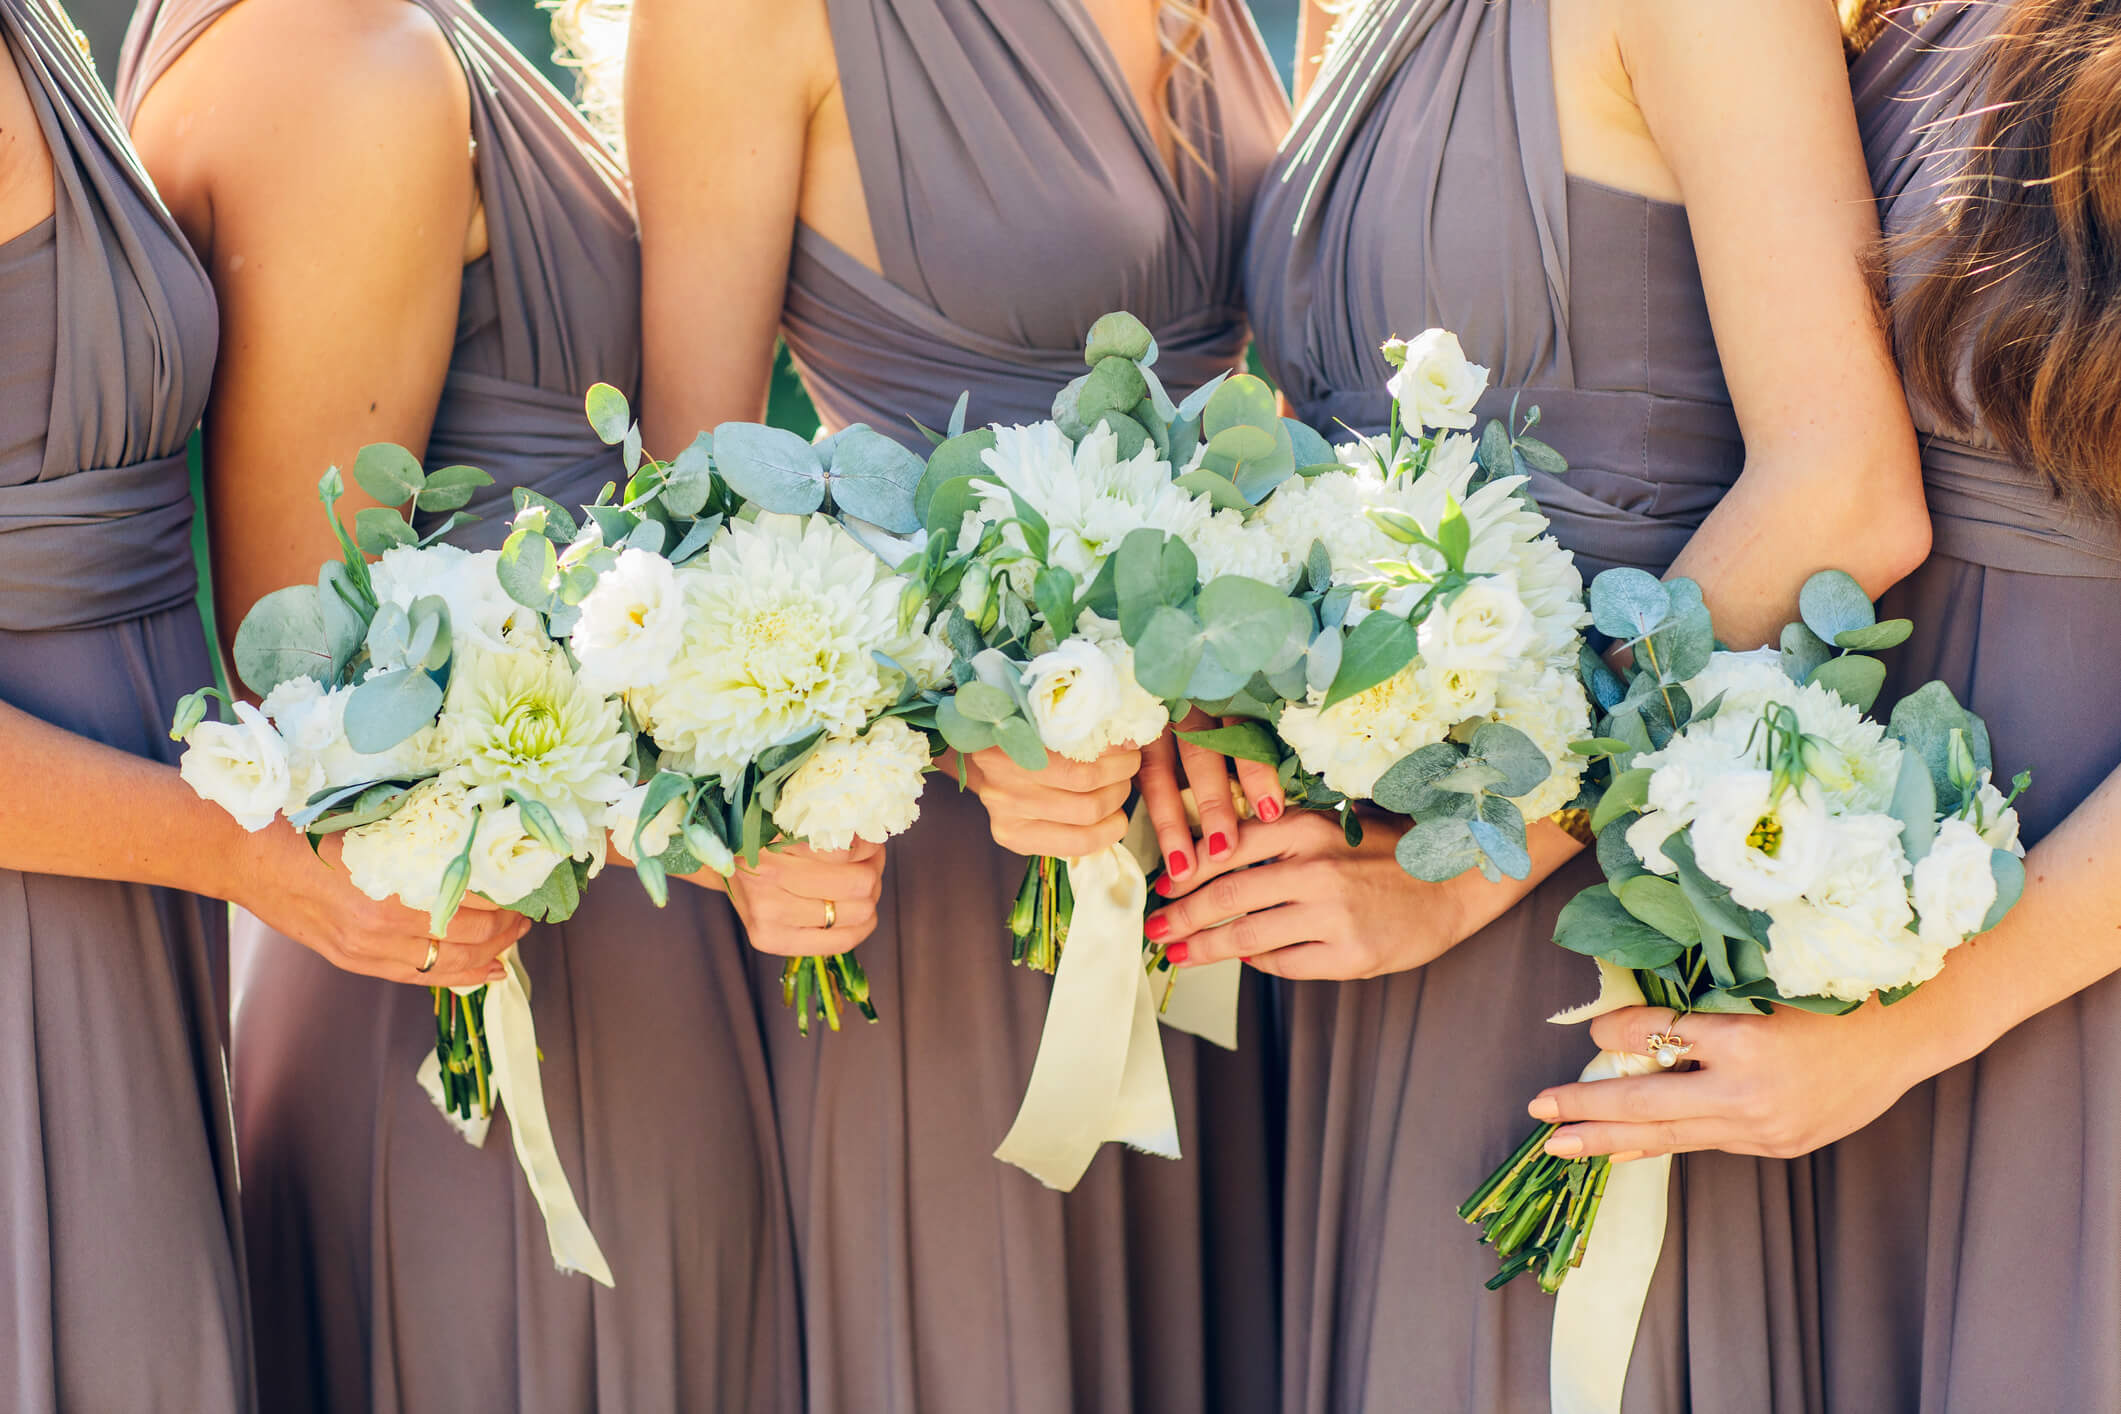 Wedding flowers top las vegas cheap bouquet package request a floral consultation so we can meet to plan the event selection includes bridal bouquet bridesmaids boutonnires izmirmasajfo